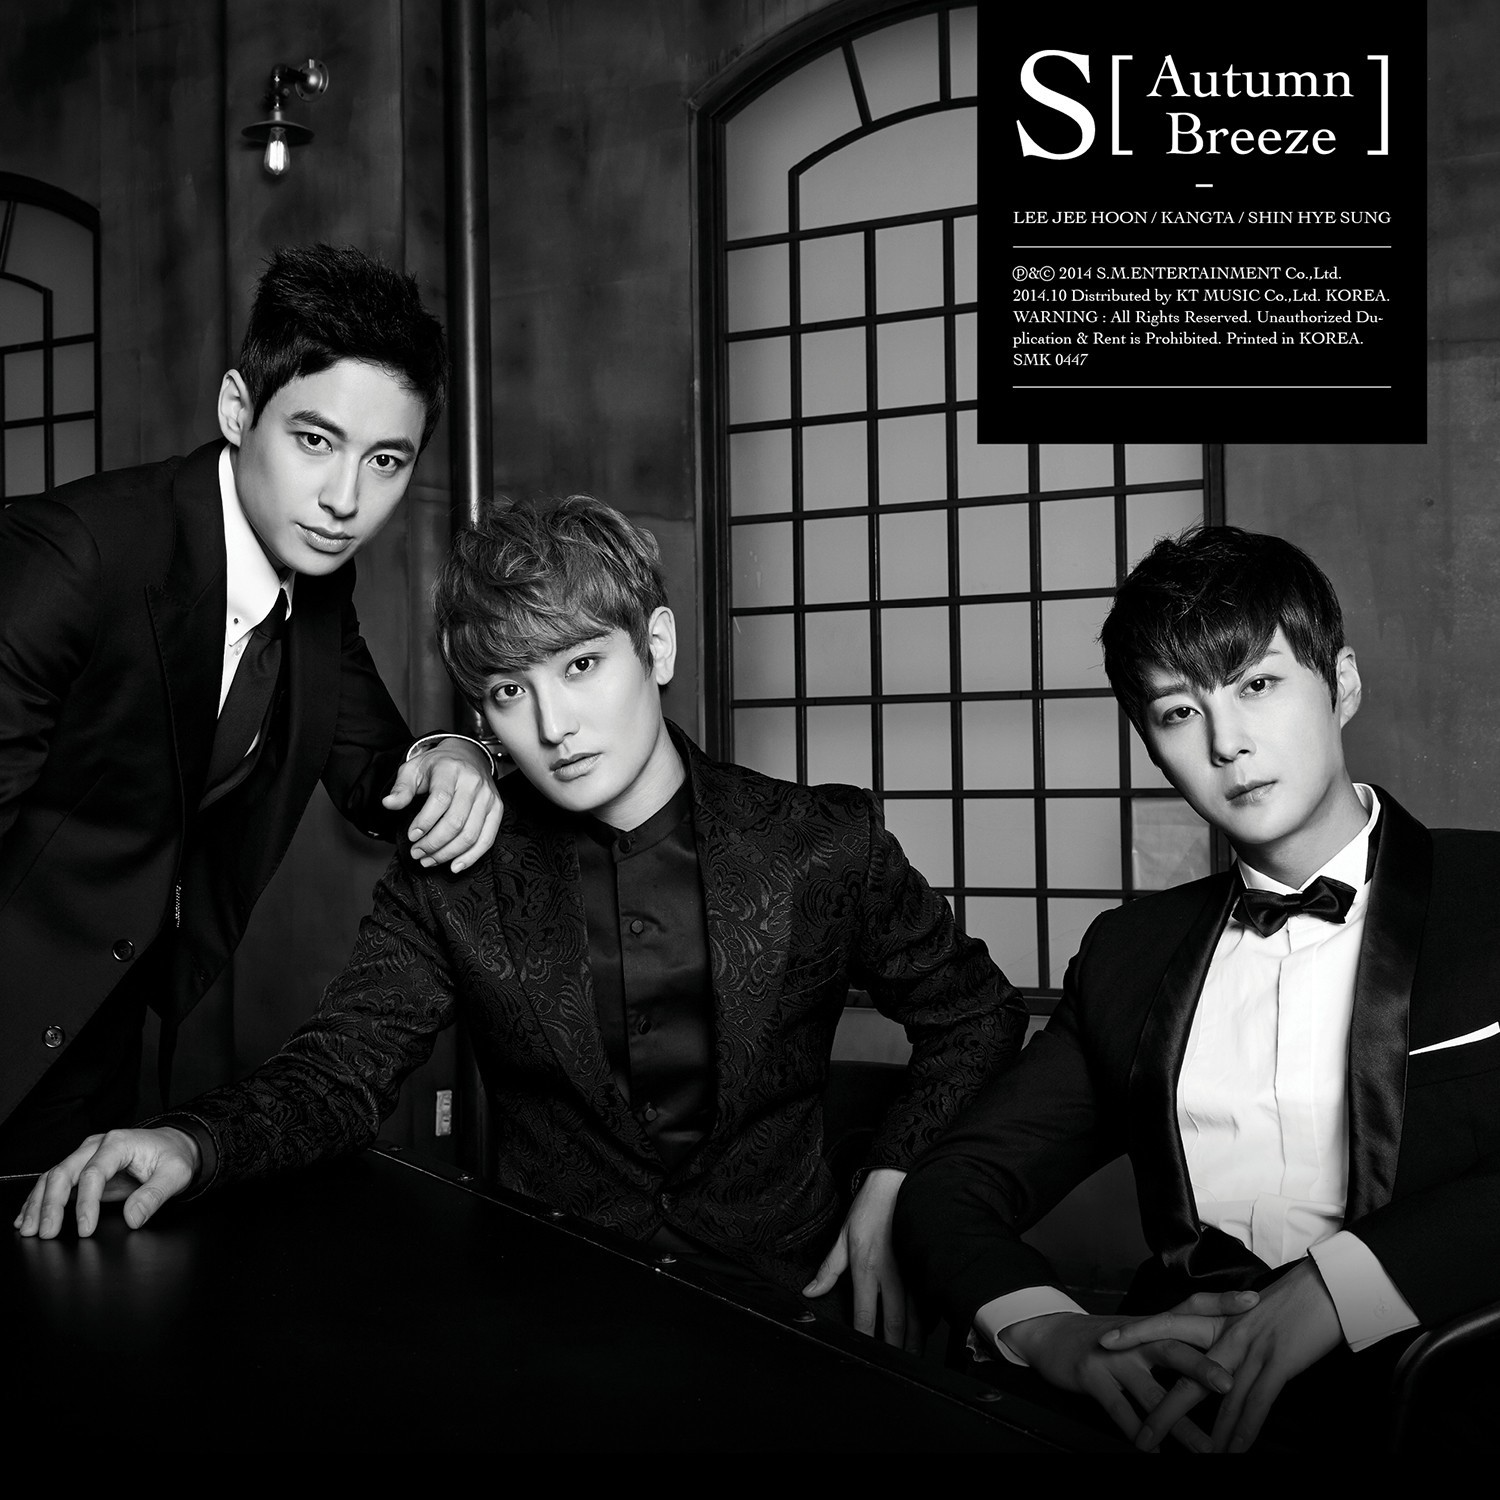 20151206.06.03 Group S - Autumn Breeze cover.jpg